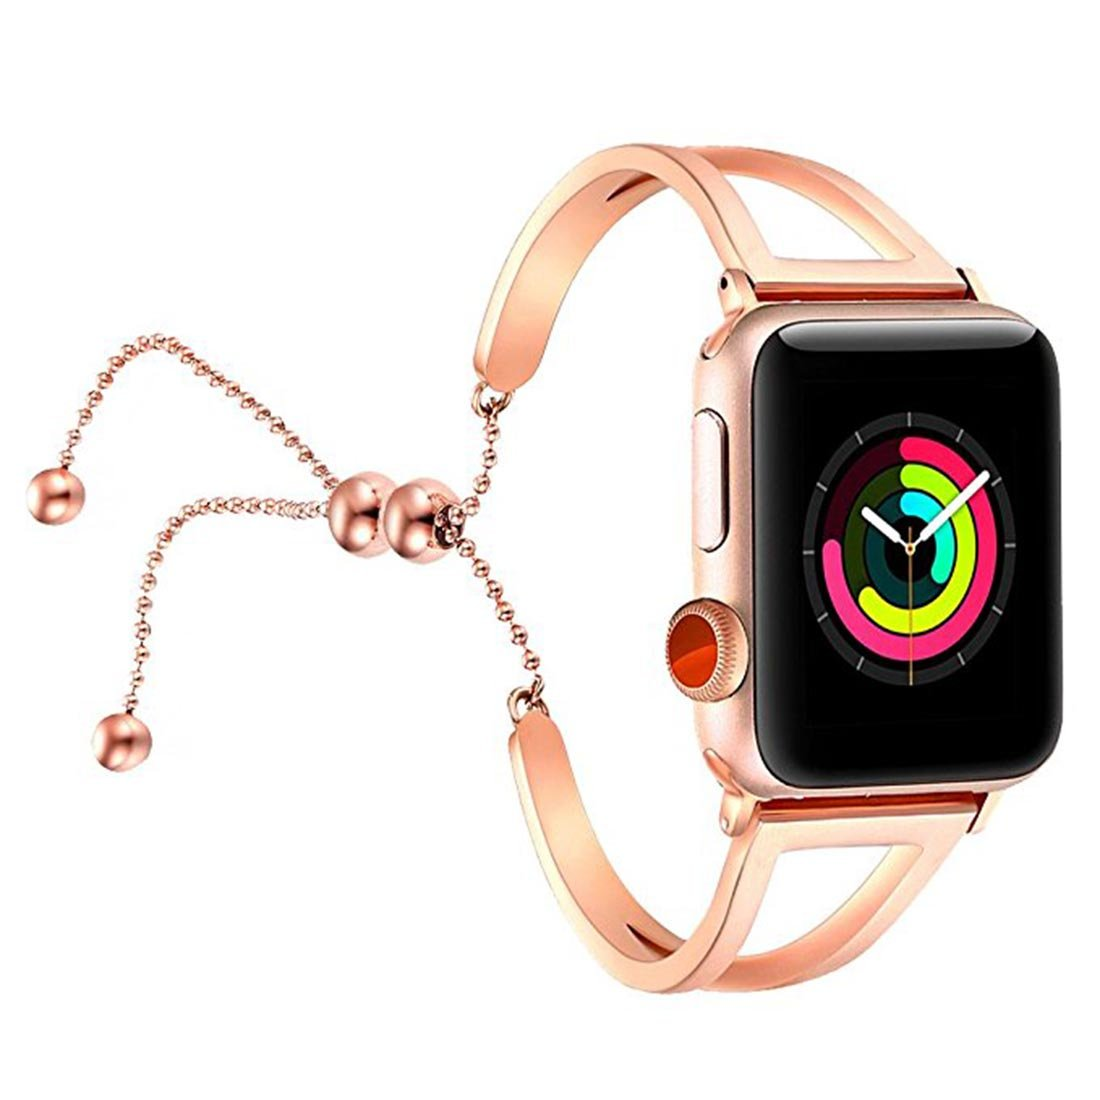 For IWatch Bands,Stainless Steel Cuff Bracelet Replacement Band iWatch Strap Wristbands for Series 3,2,1 (Rose gold color plated,38mm)